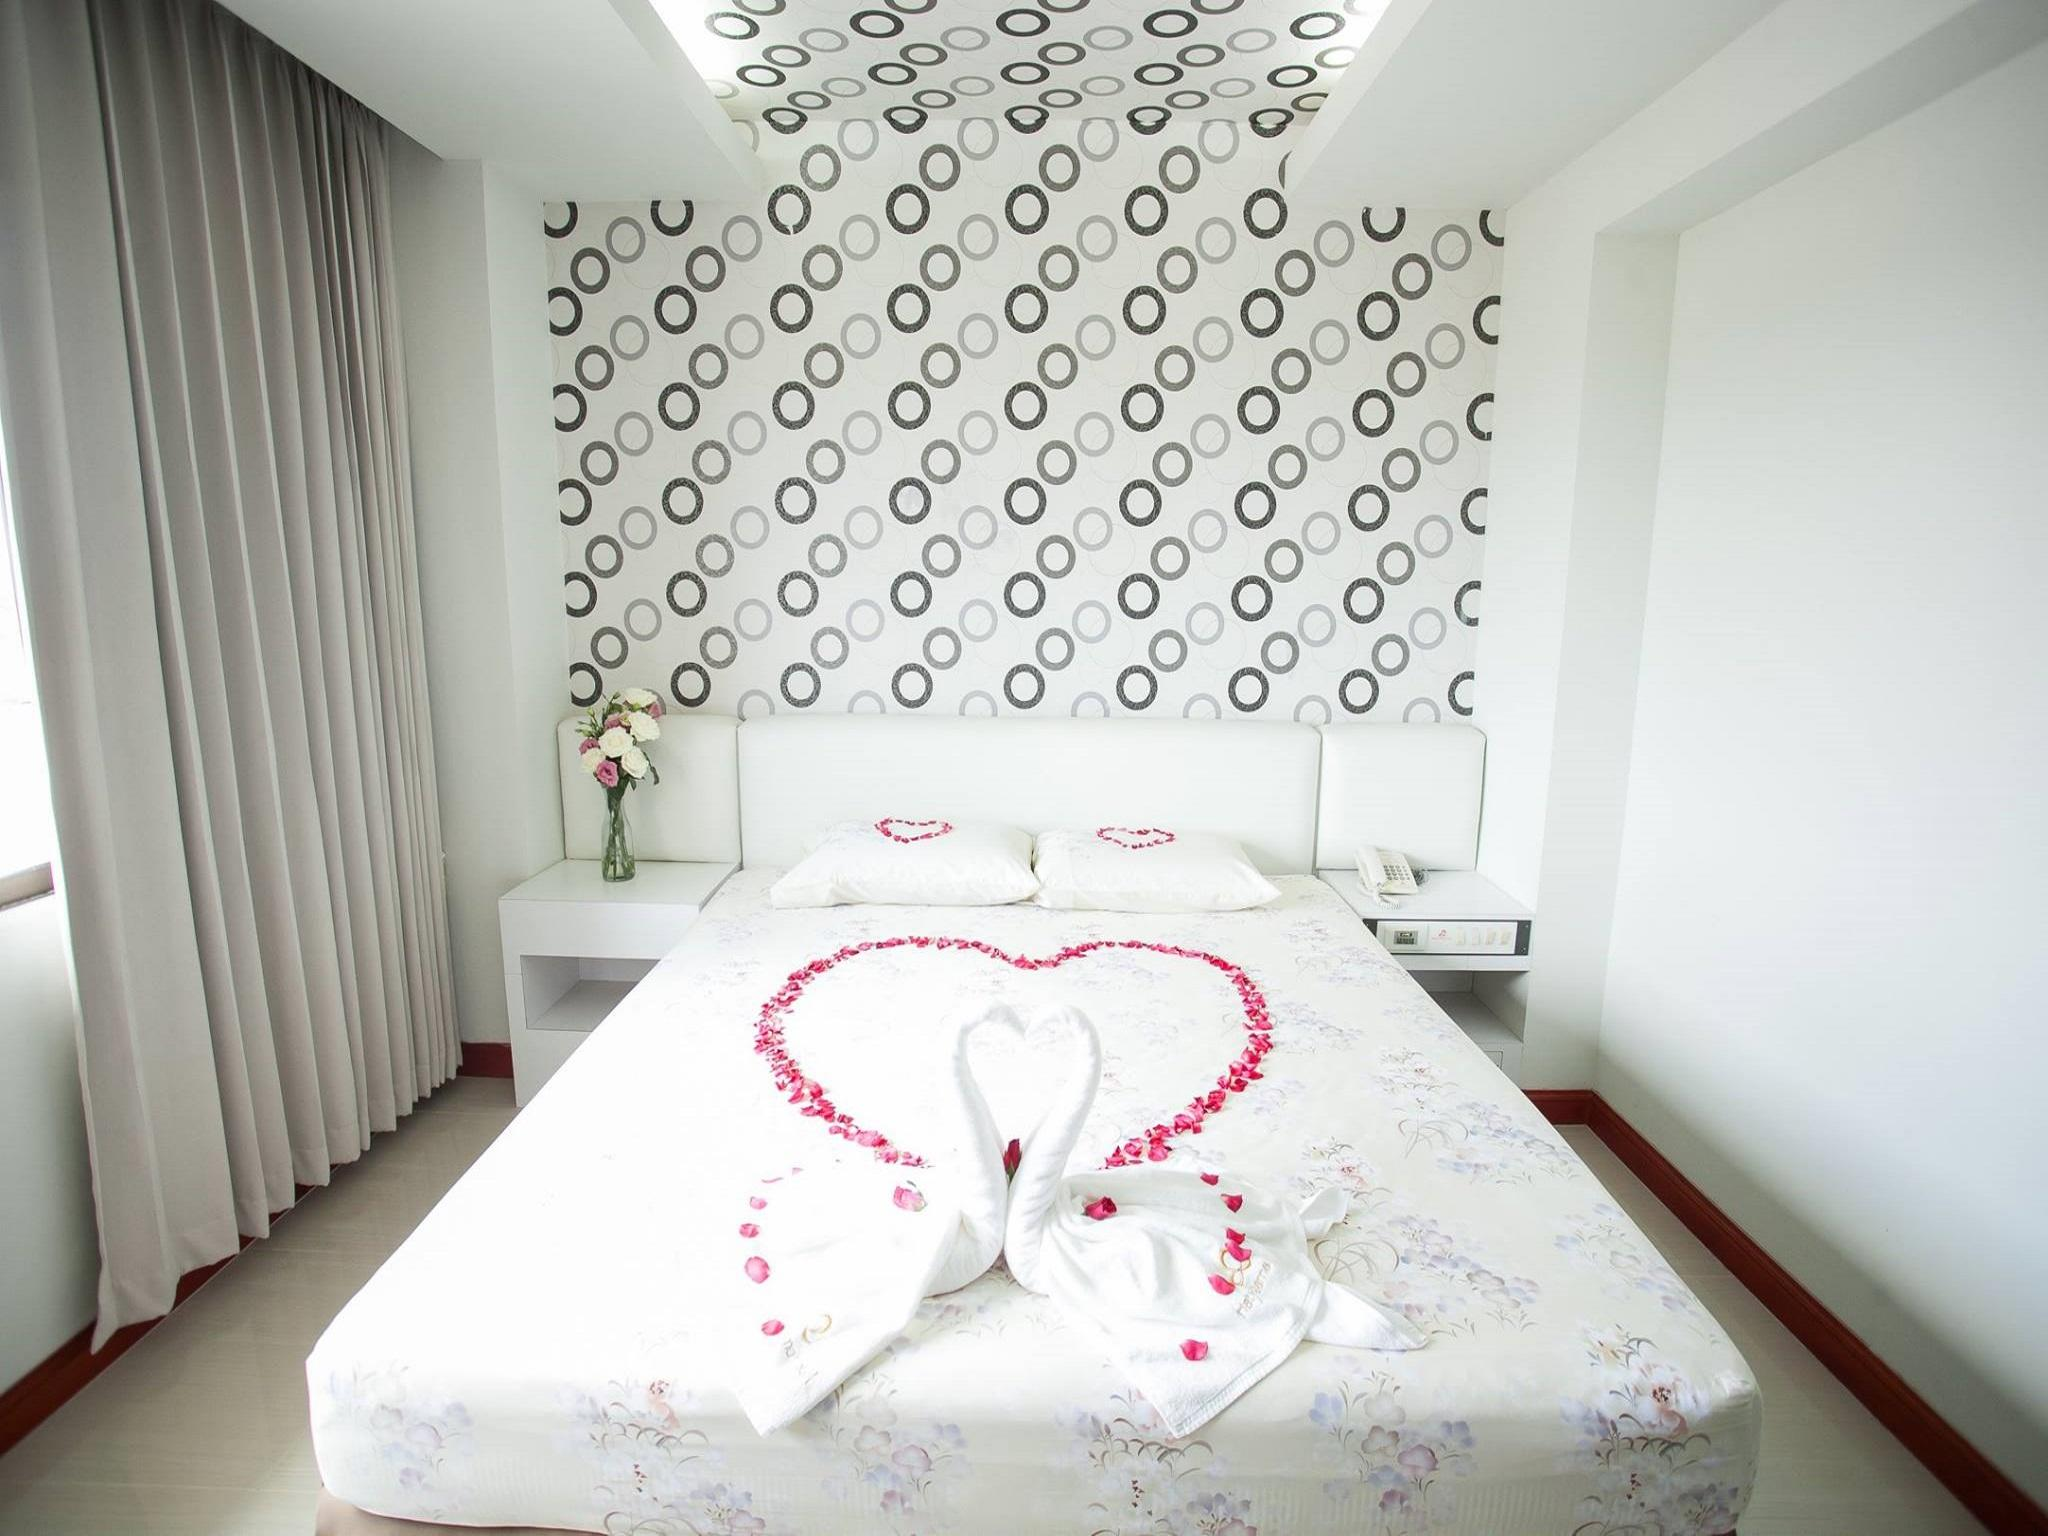 Standard Room (1 Double Bed)